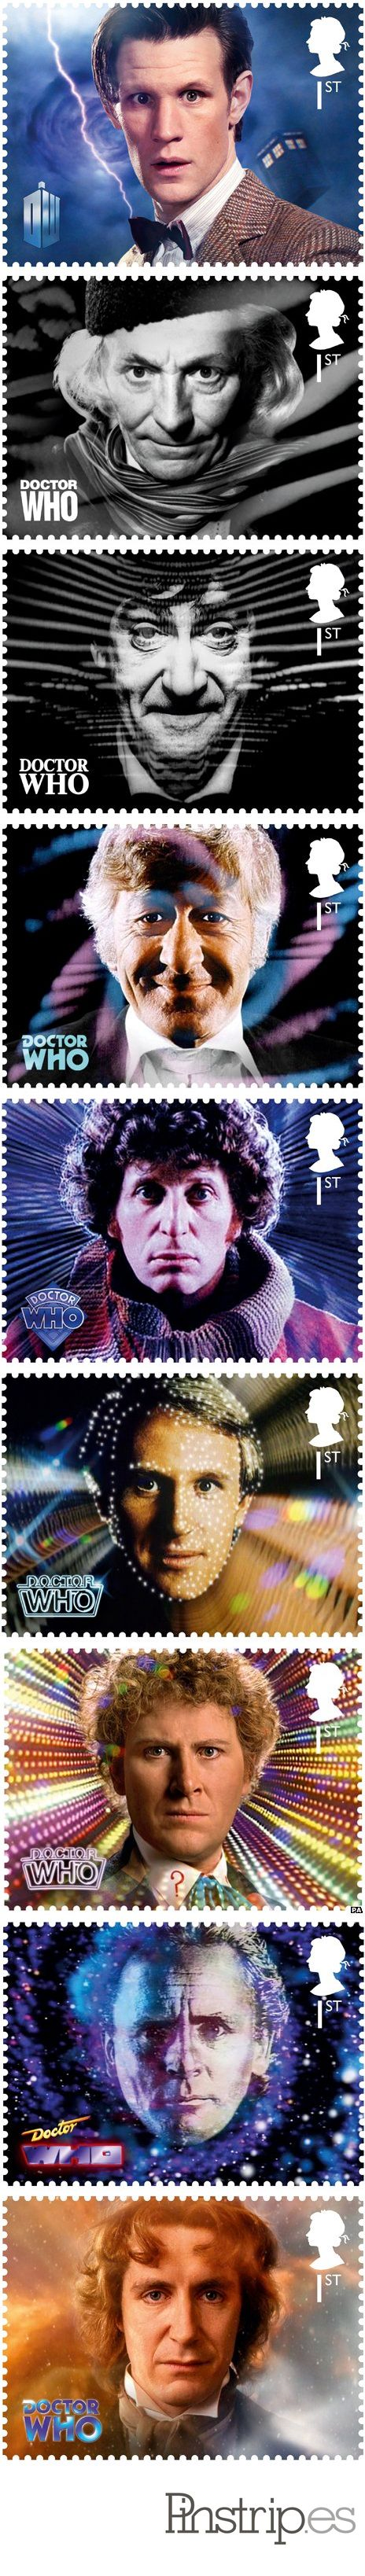 Tom Baker, David Tennant and Patrick Troughton are to feature on a special set of Royal Mail stamps in 2013.    The collection marks the 50th anniversary of sci-fi show Doctor Who, with all 11 Doctors getting their own first class stamp.    Four of the show's most notorious villains, including the Daleks and the Cybermen, star on the second class set.